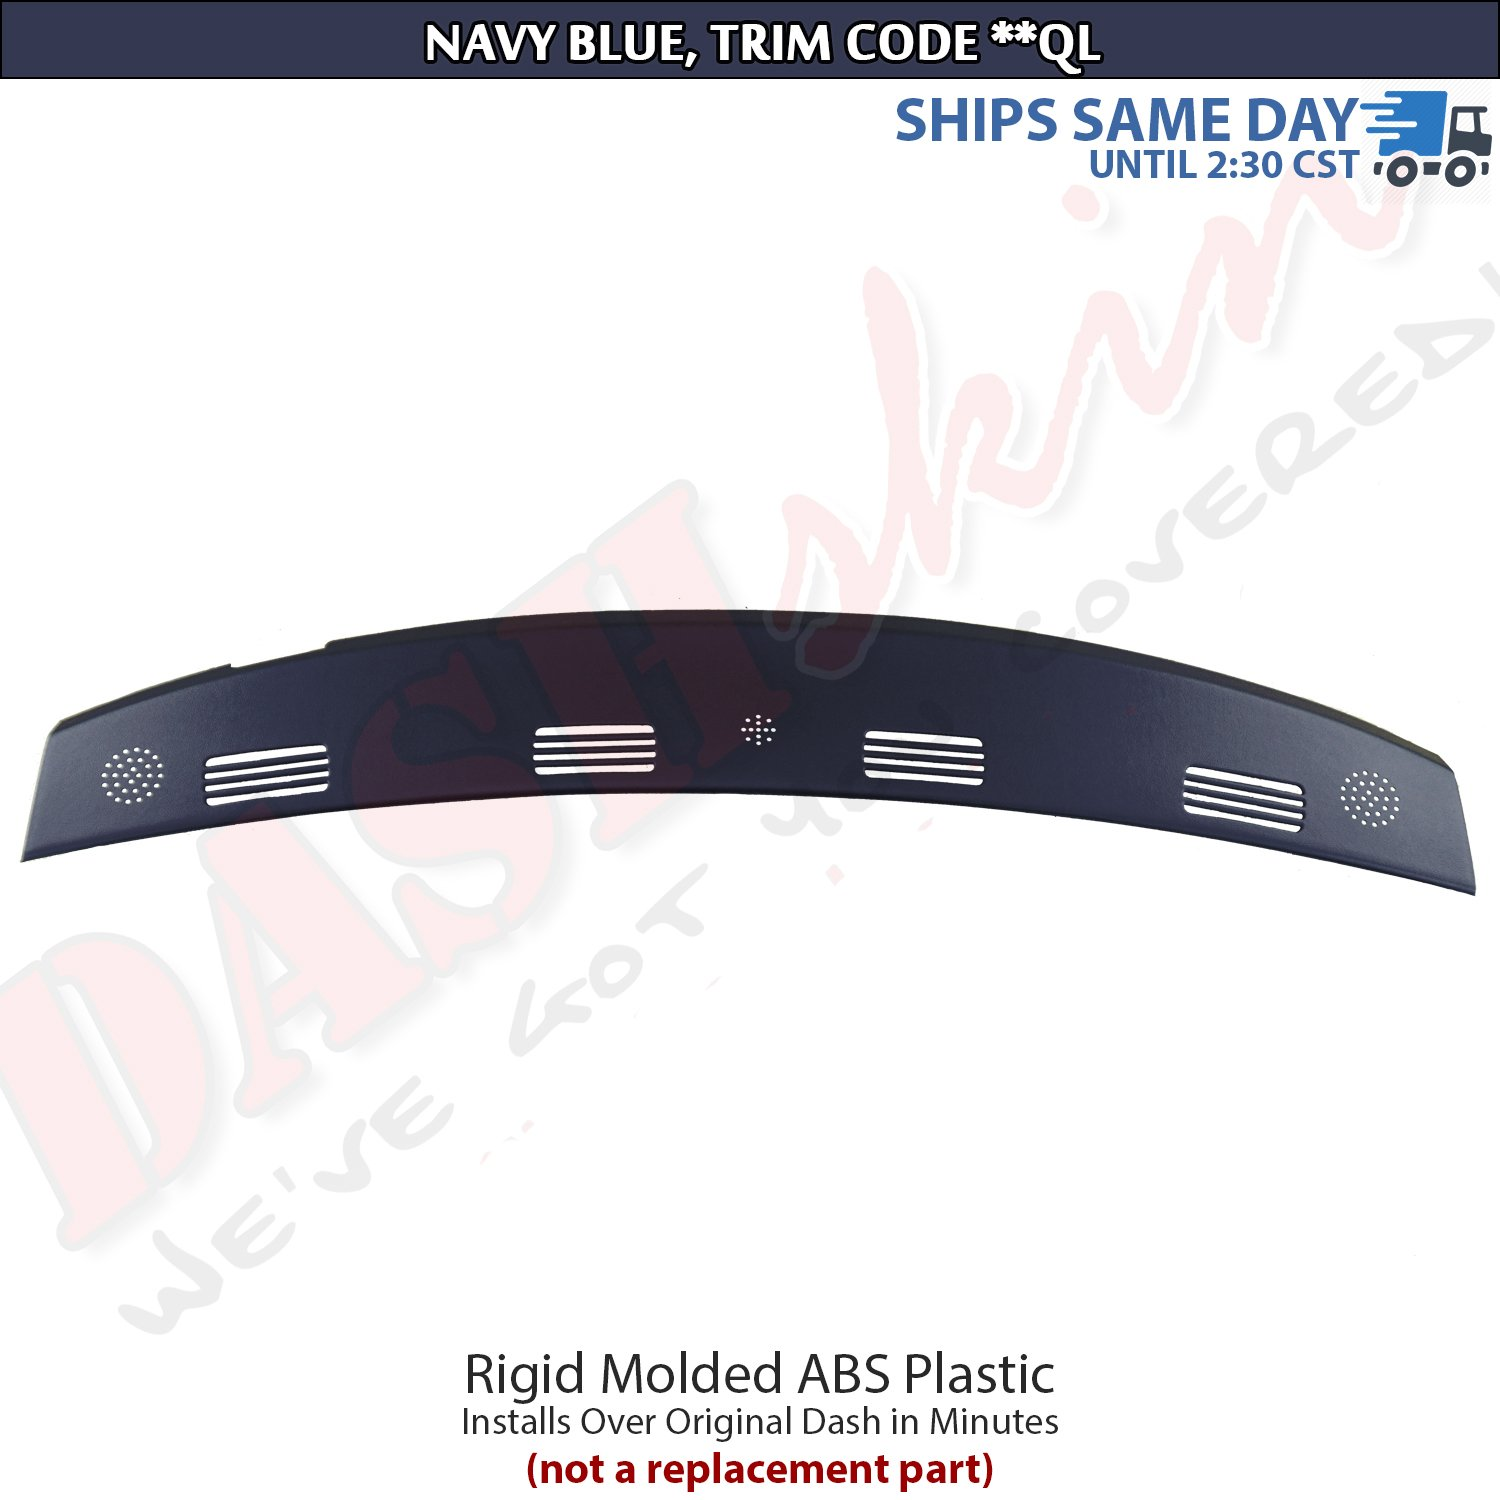 DashSkin Molded Defrost Dash Cover Compatible with 02-05 Dodge Ram in Navy Blue